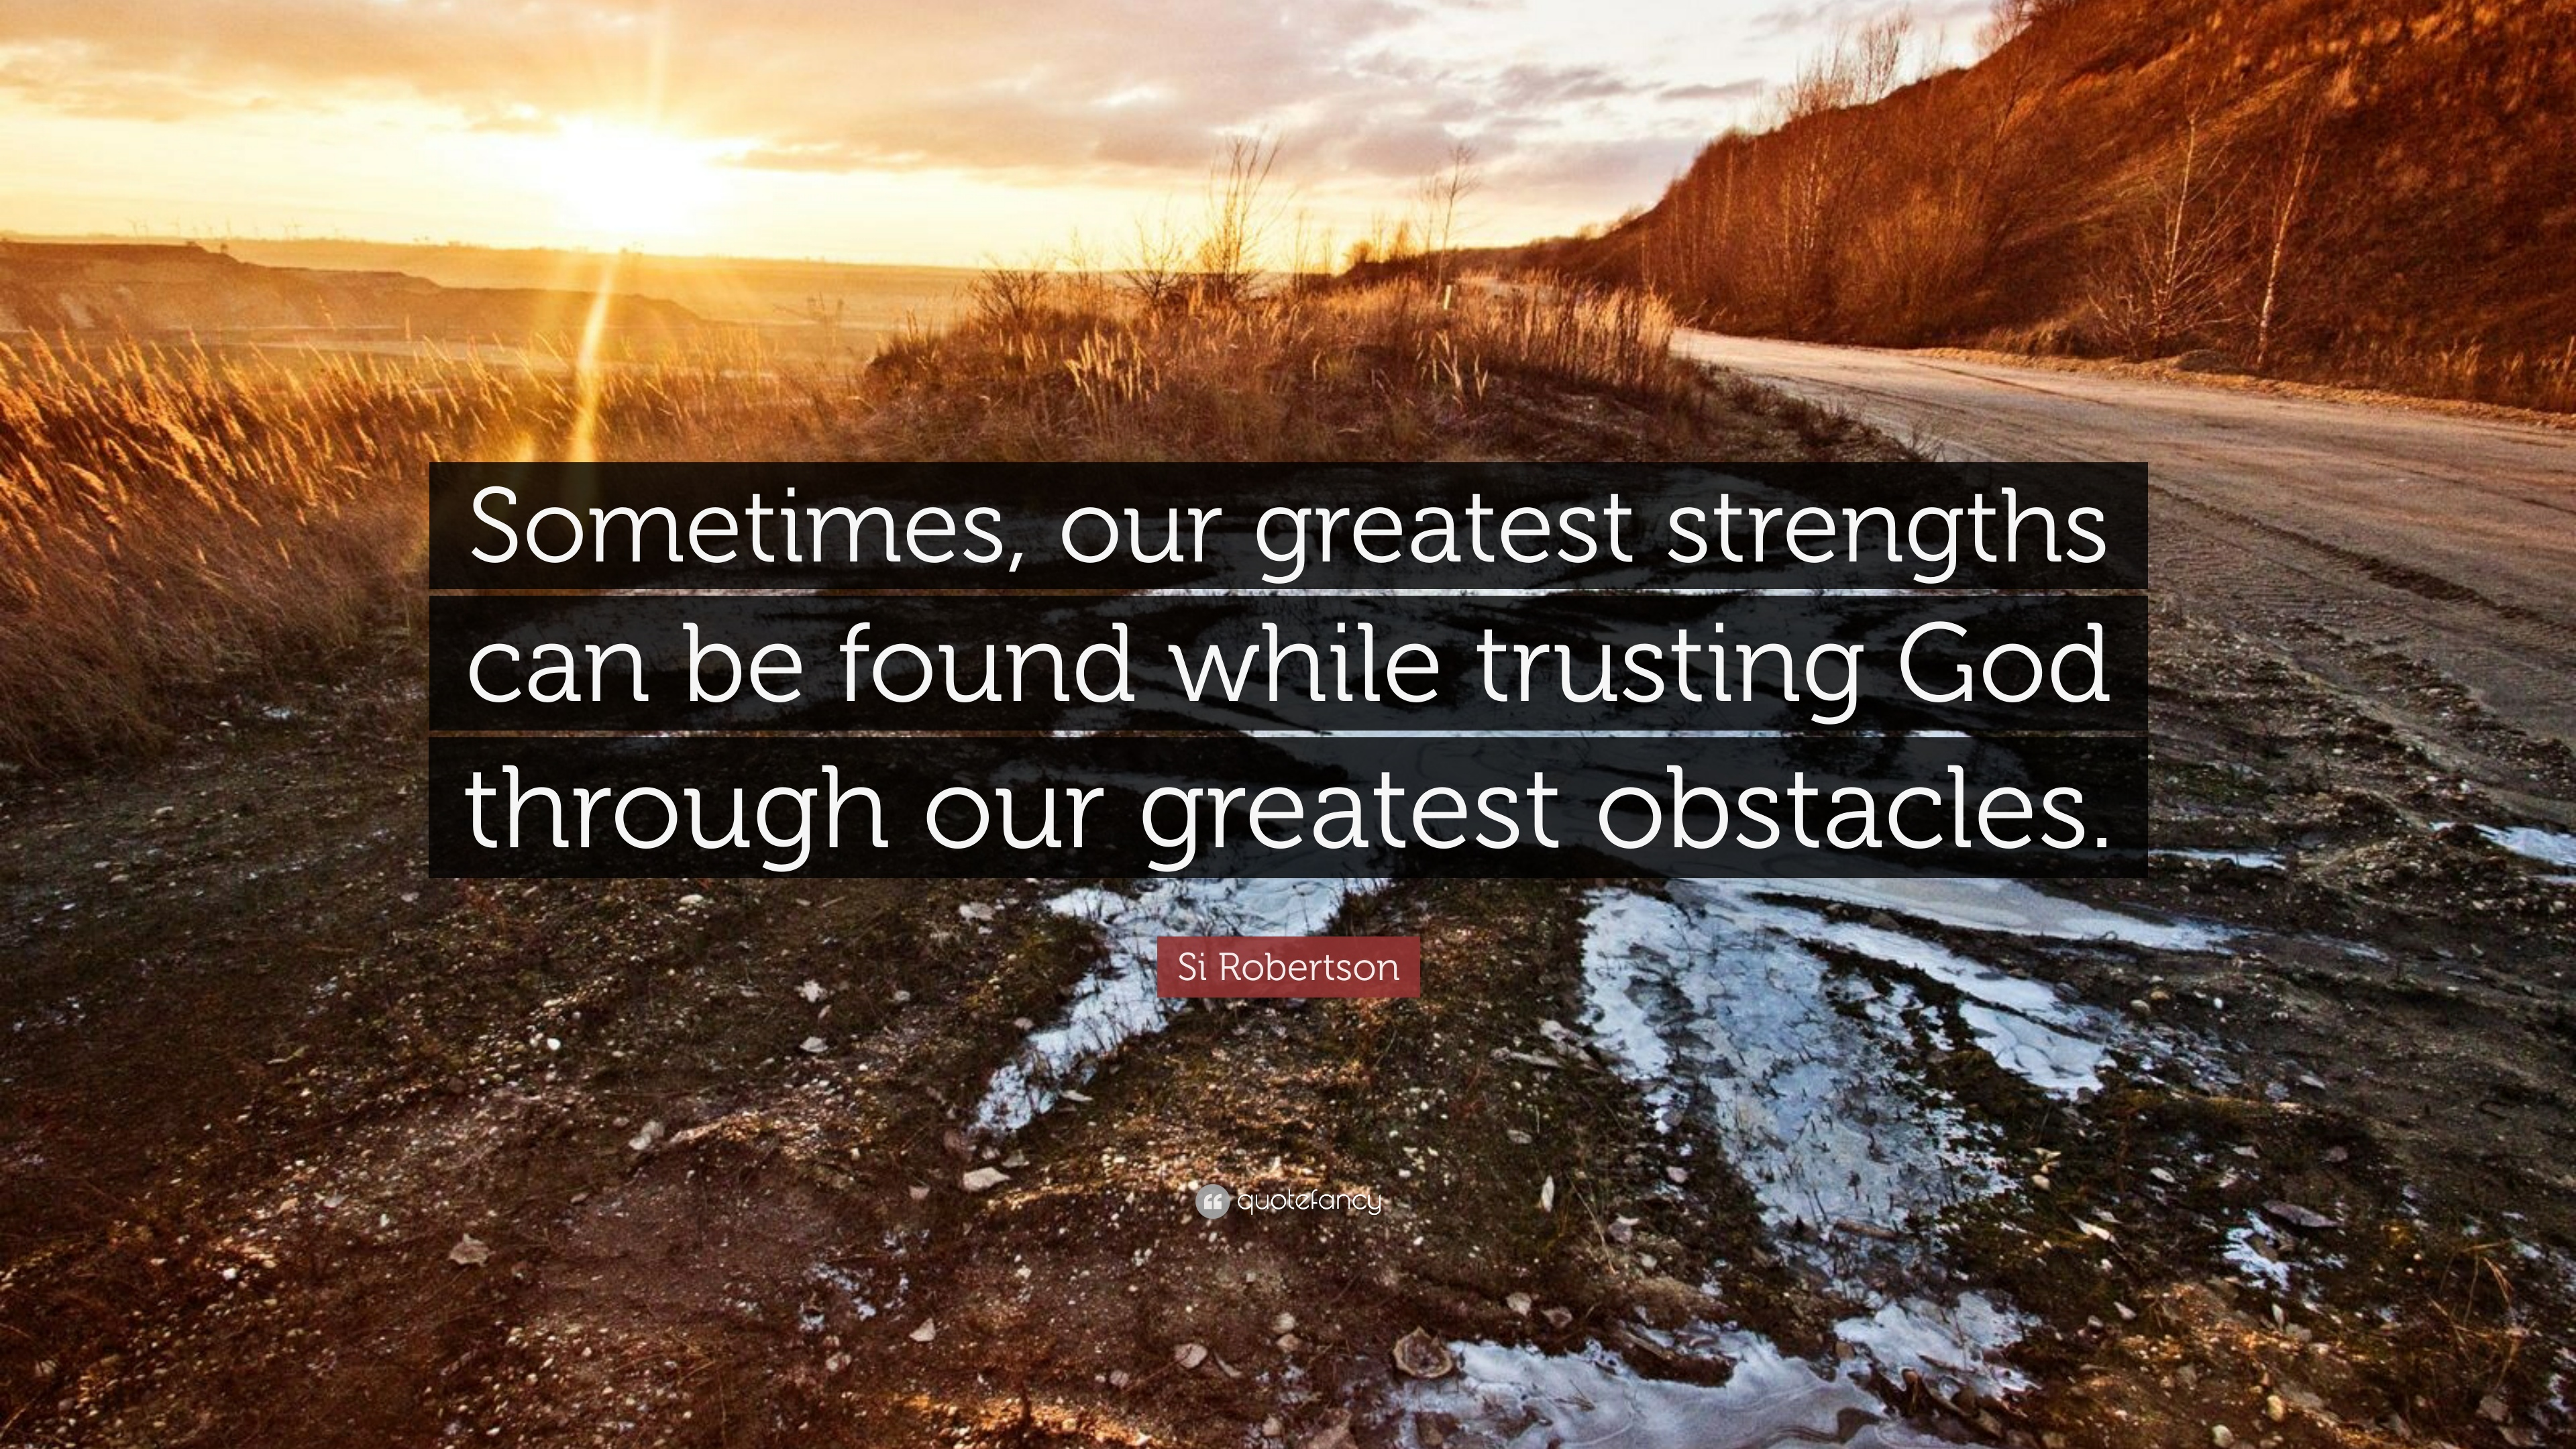 si robertson quote sometimes our greatest strengths can be si robertson quote sometimes our greatest strengths can be found while trusting god